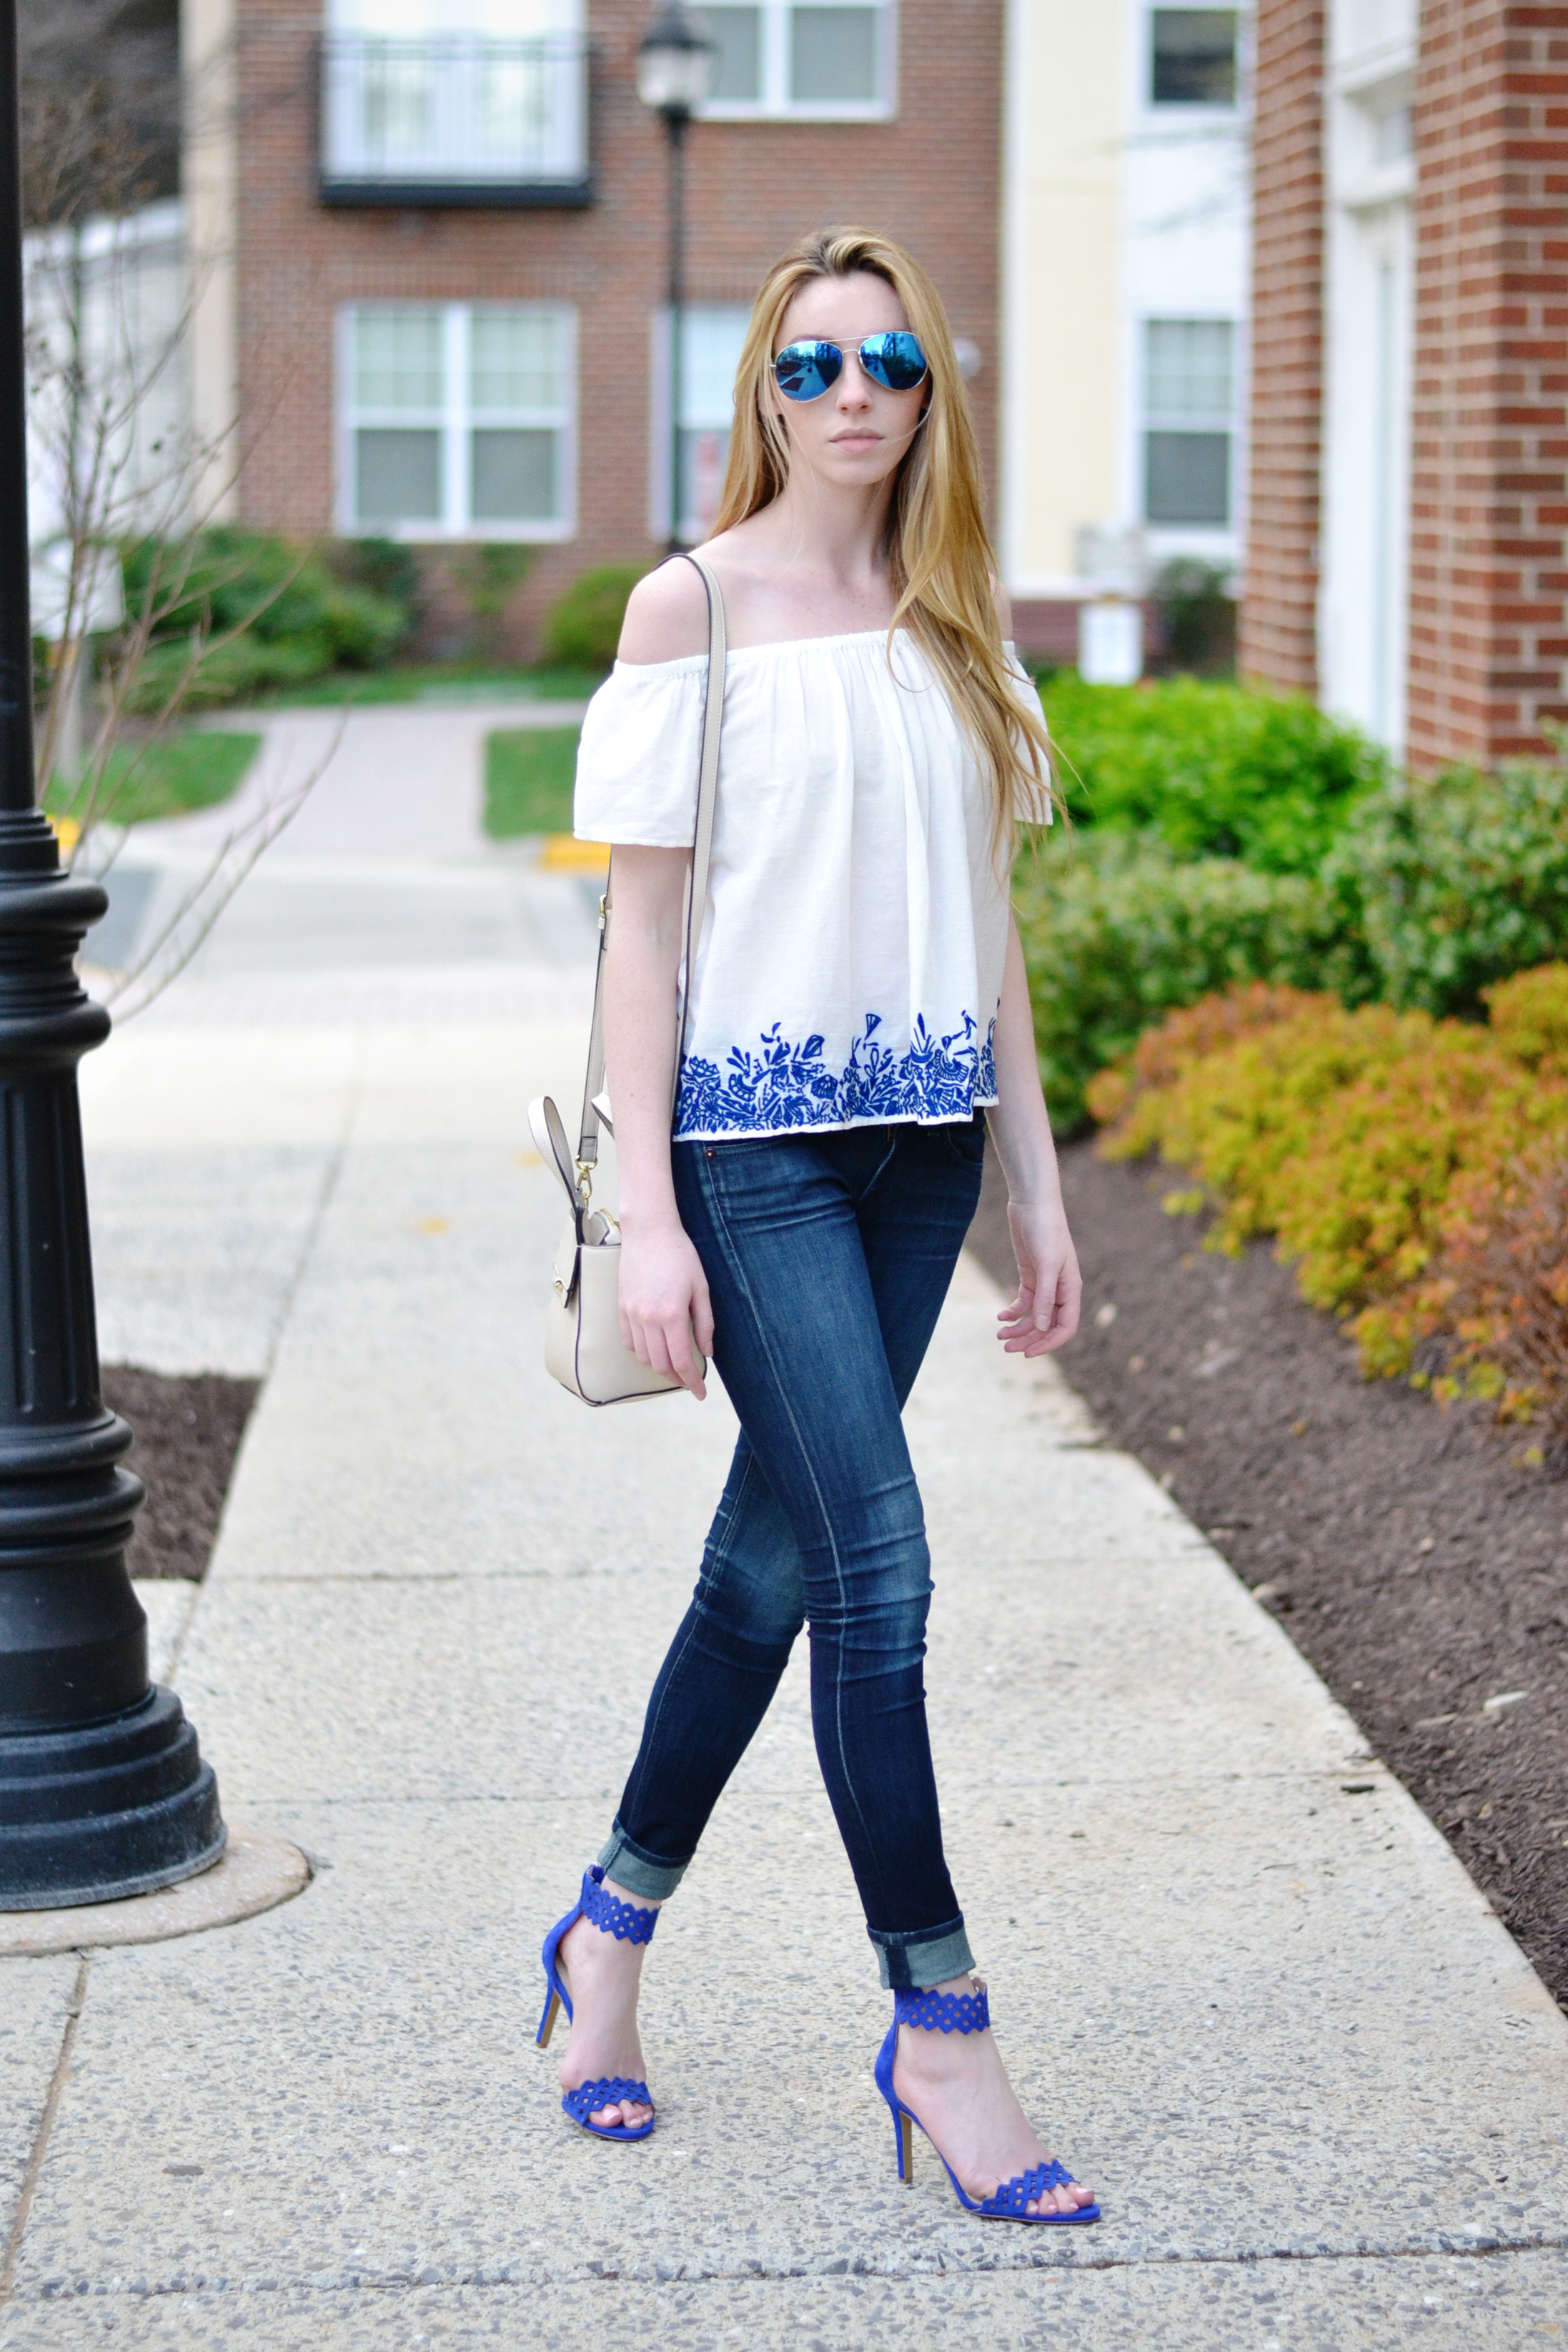 Off The Shoulder Outfit (via Chic Now)